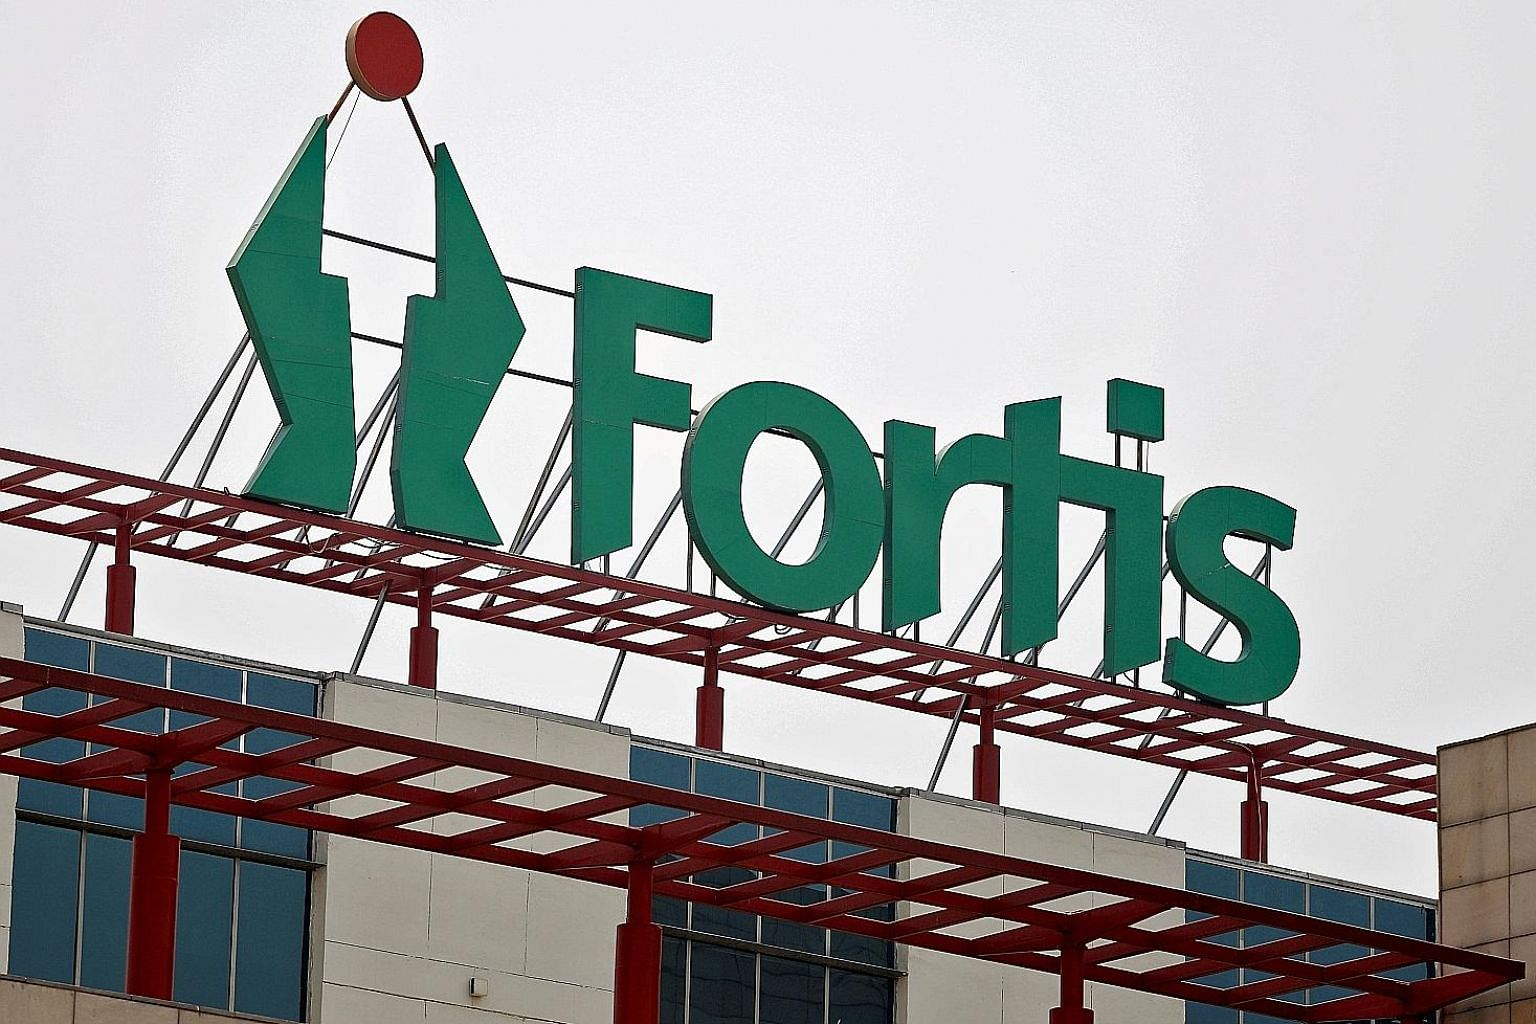 Fortis Healthcare is India's second-largest private hospital chain. The bidding war for it began earlier this year after Fortis founders Malvinder and Shivinder Singh lost their shareholding owing to debt and allegations that they had improperly take